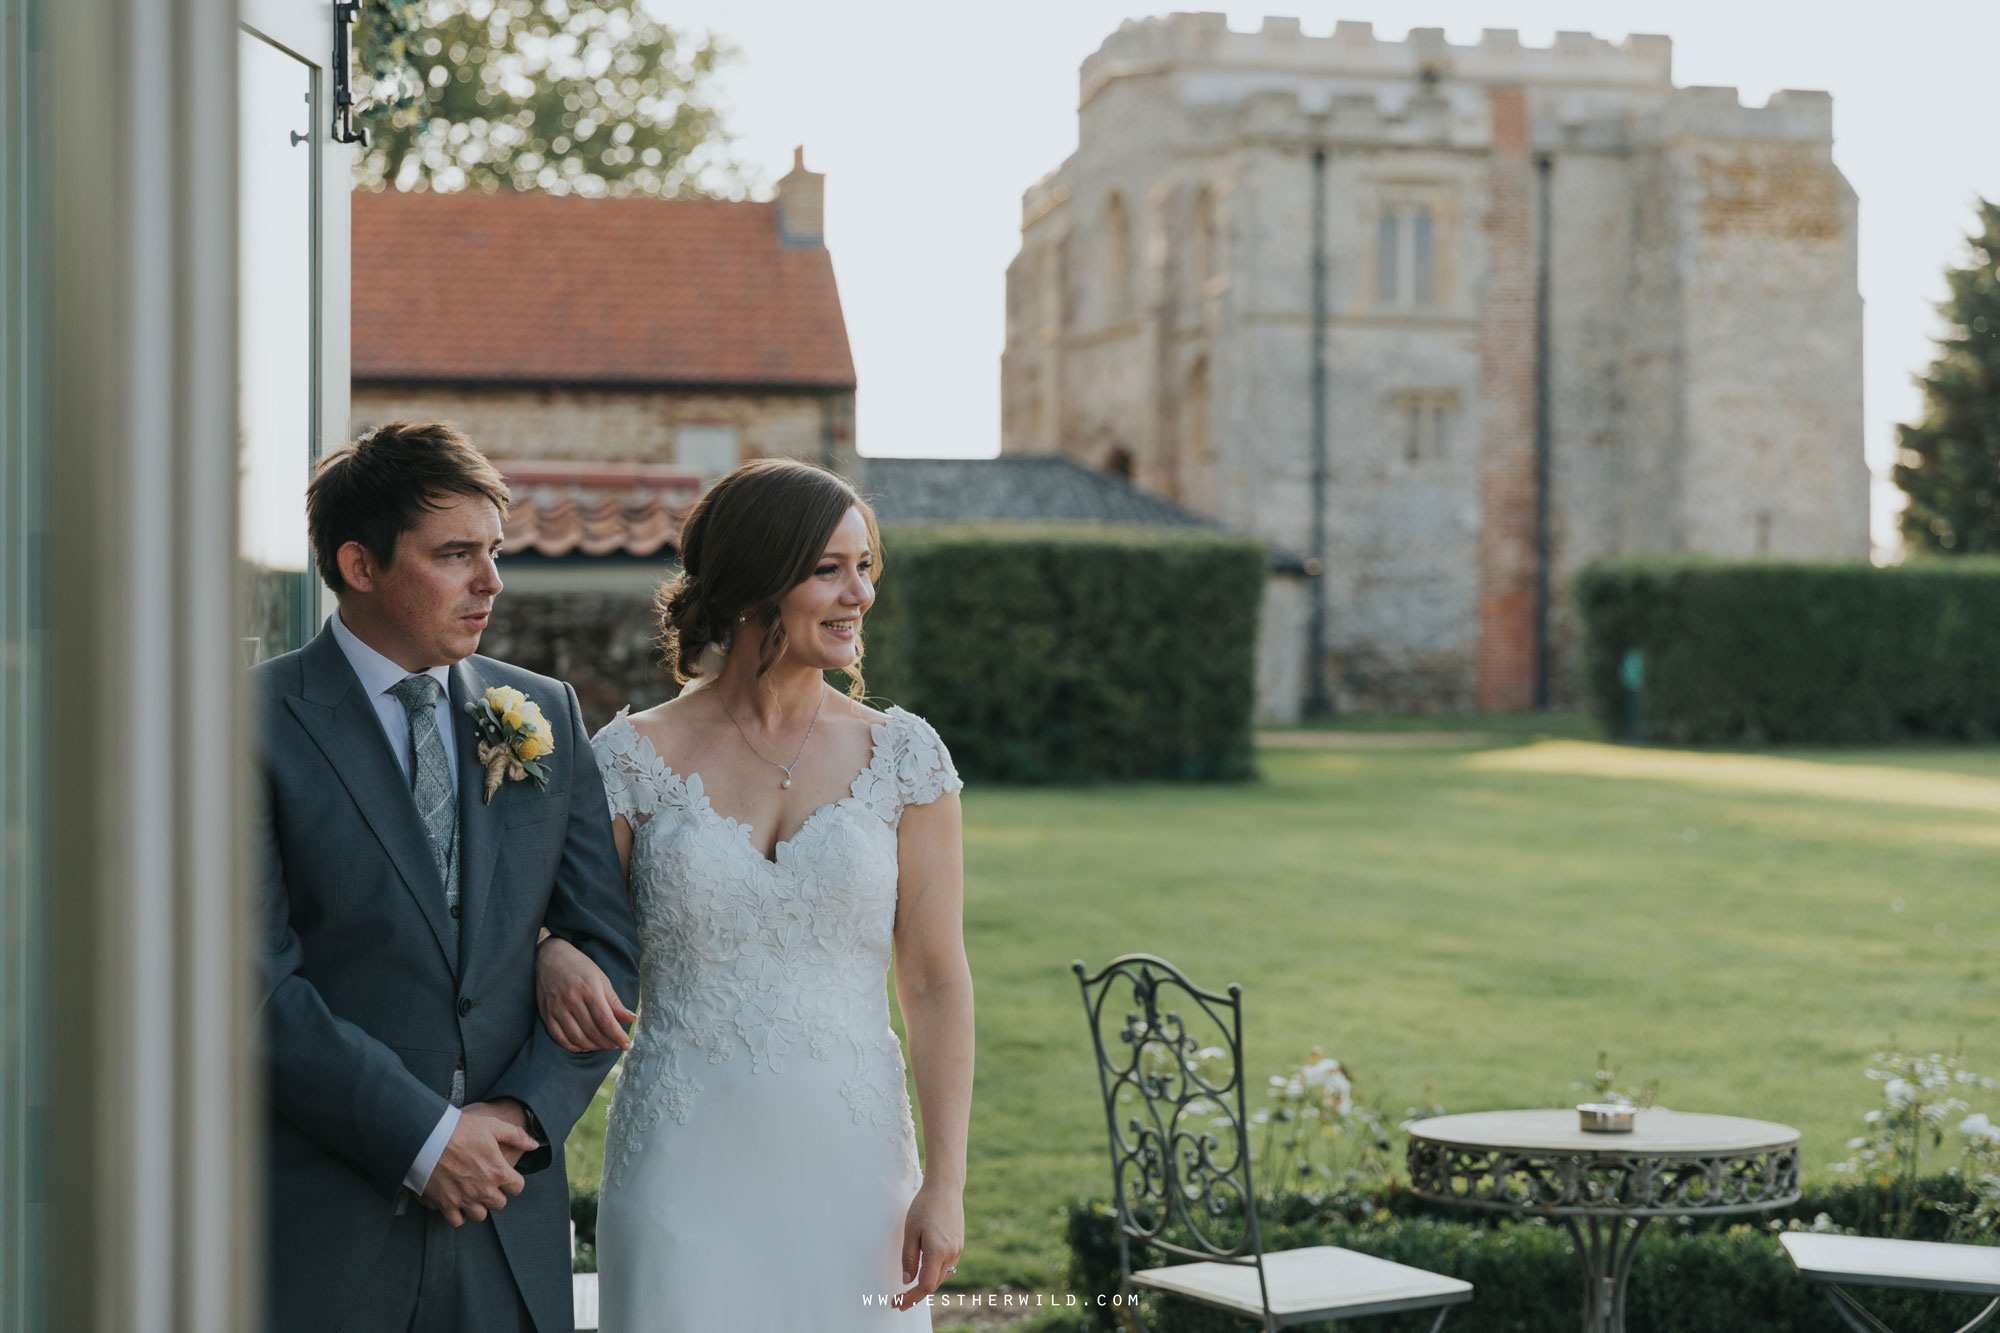 Pentney_Abbey_Wedding_Kings_Lynn_Norfolk_Esther_Wild_Wedding_Photography_IMG_1374.jpg